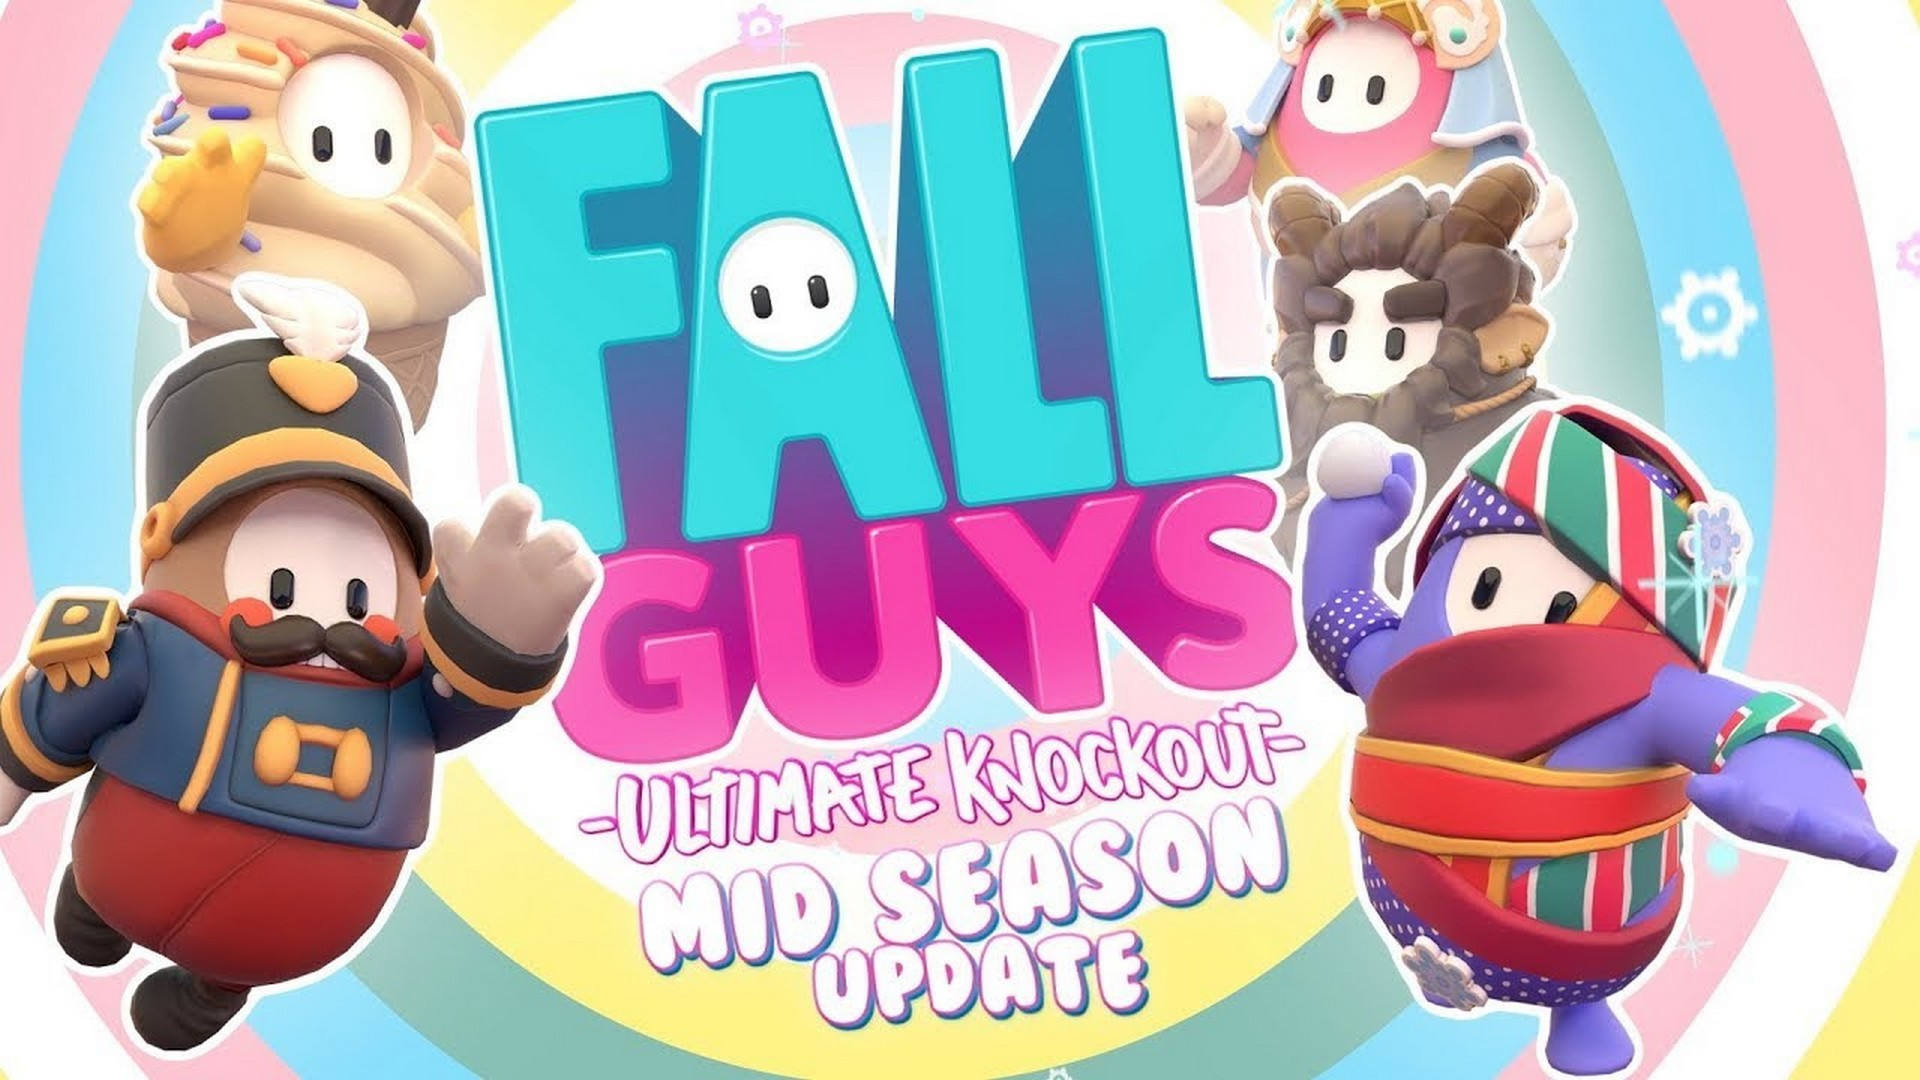 Fall Guys Season 3.5 Delivers a Hefty Haul of Updates